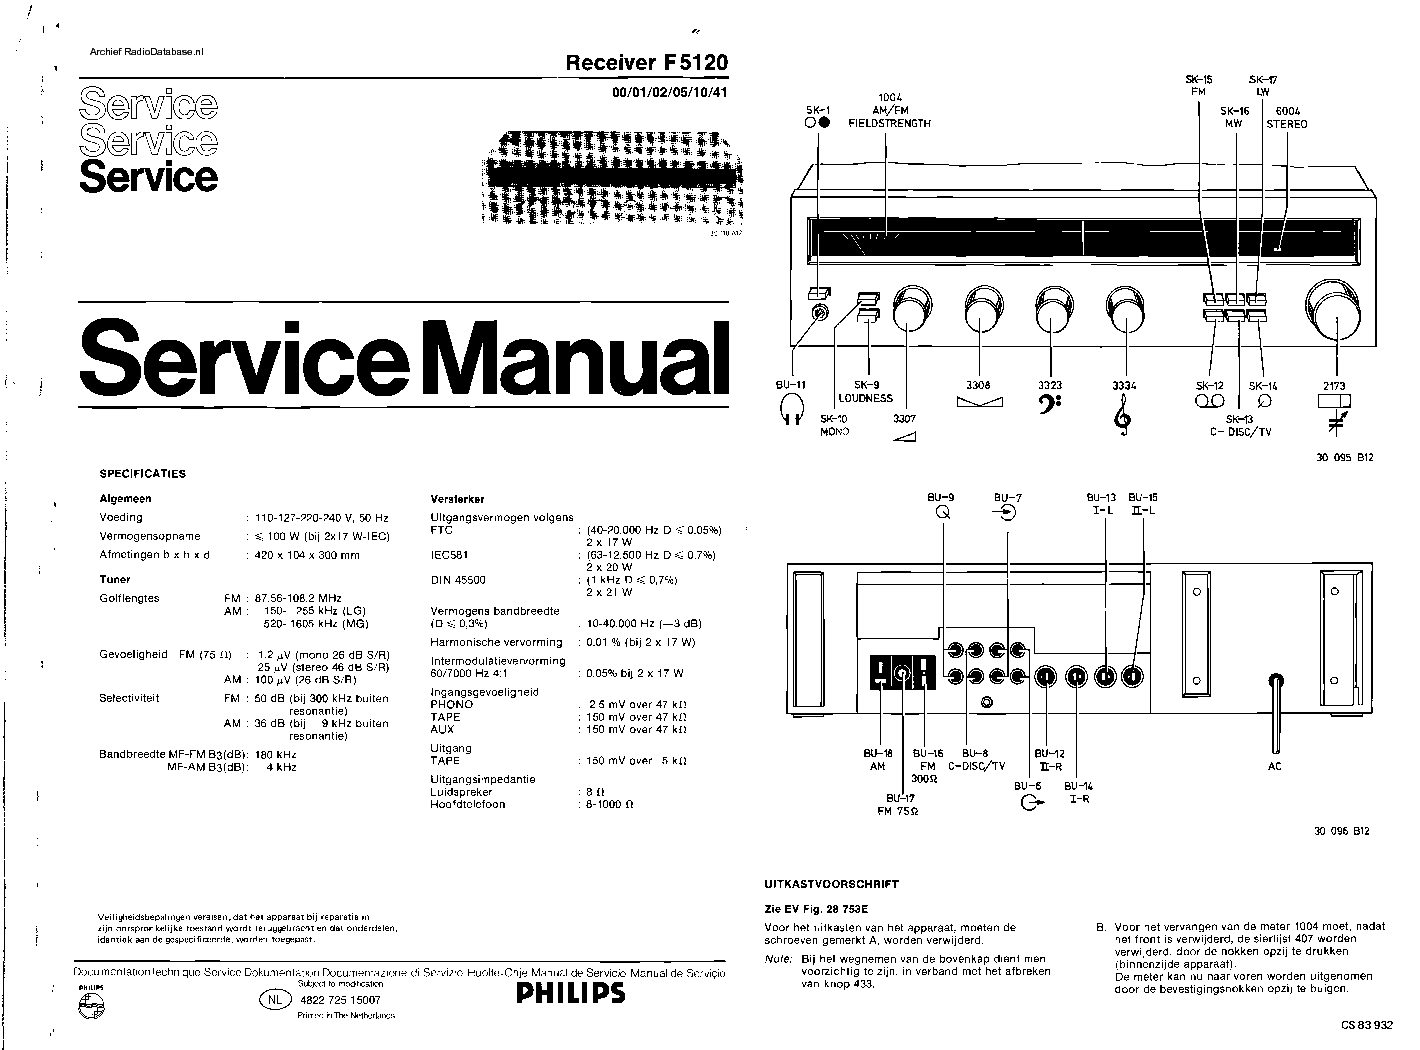 PHILIPS F5120 service manual (1st page)